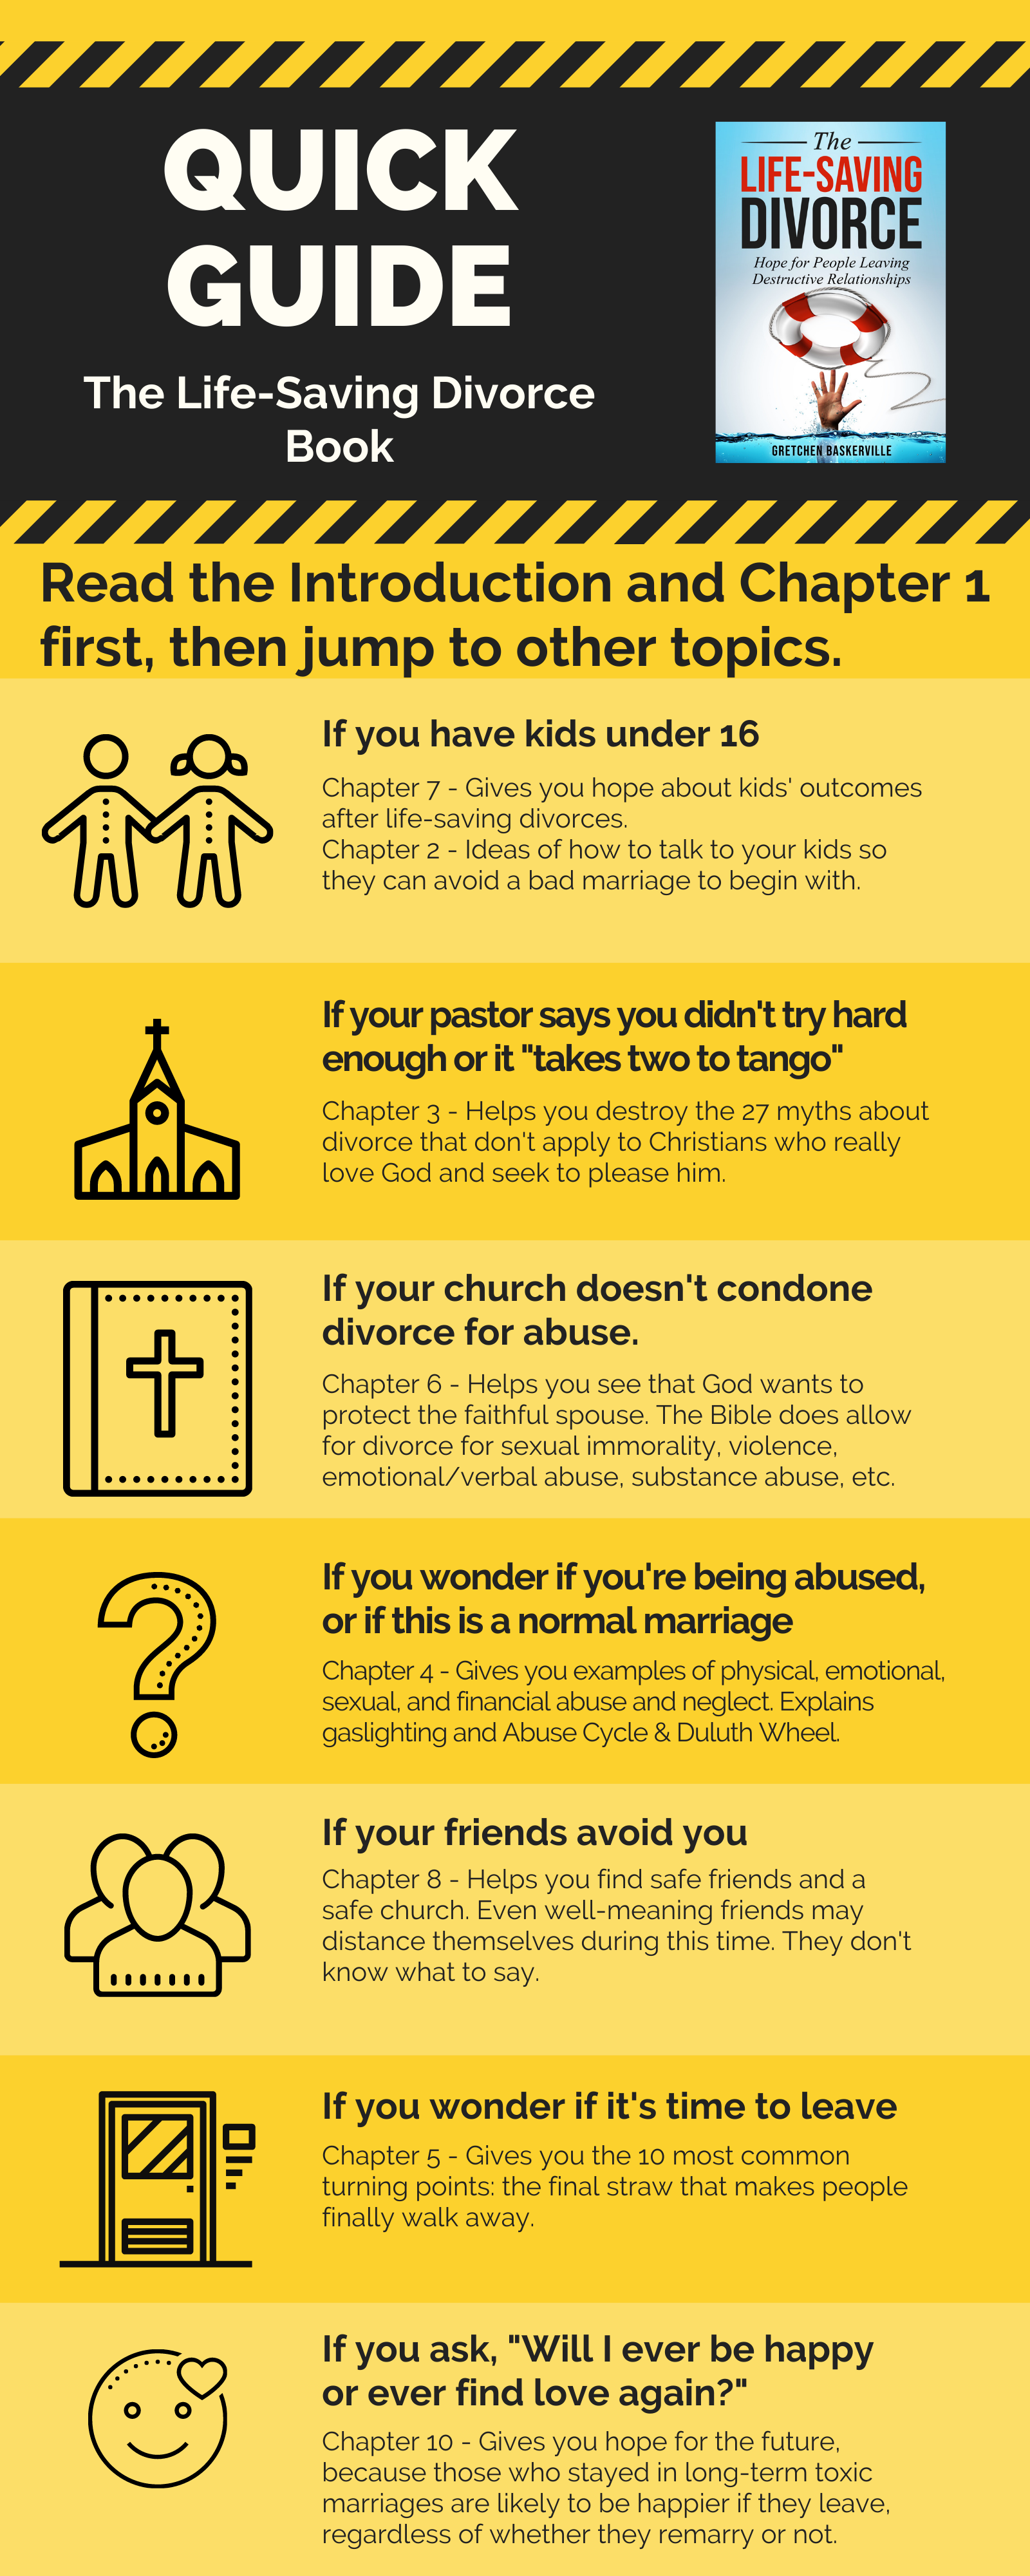 Life-Saving Divorce: Popular Chapters Quick Guide Infographic